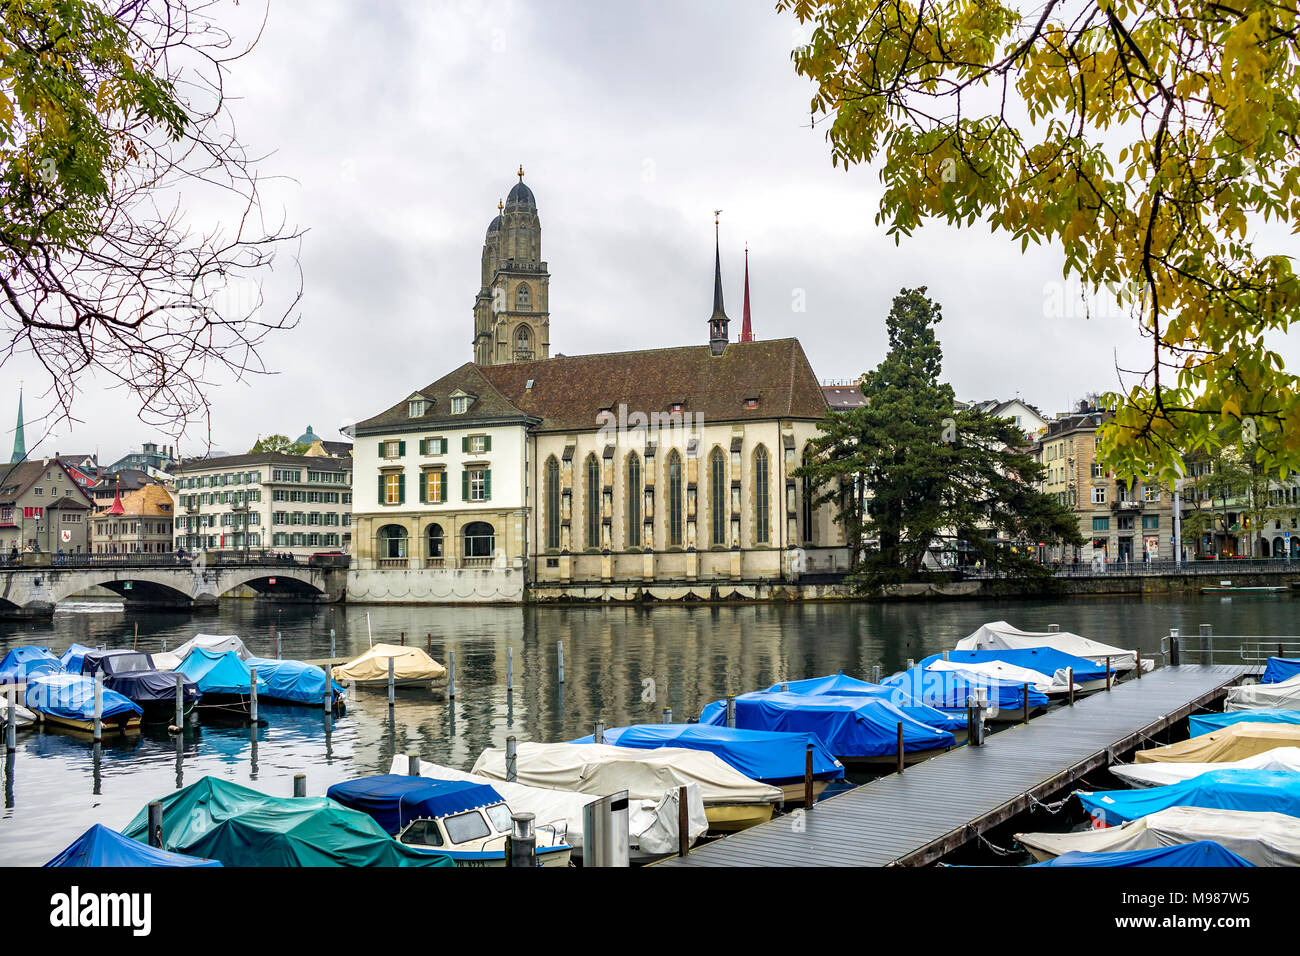 Switzerland, Zurich, view to mooring area at Limmat River - Stock Image